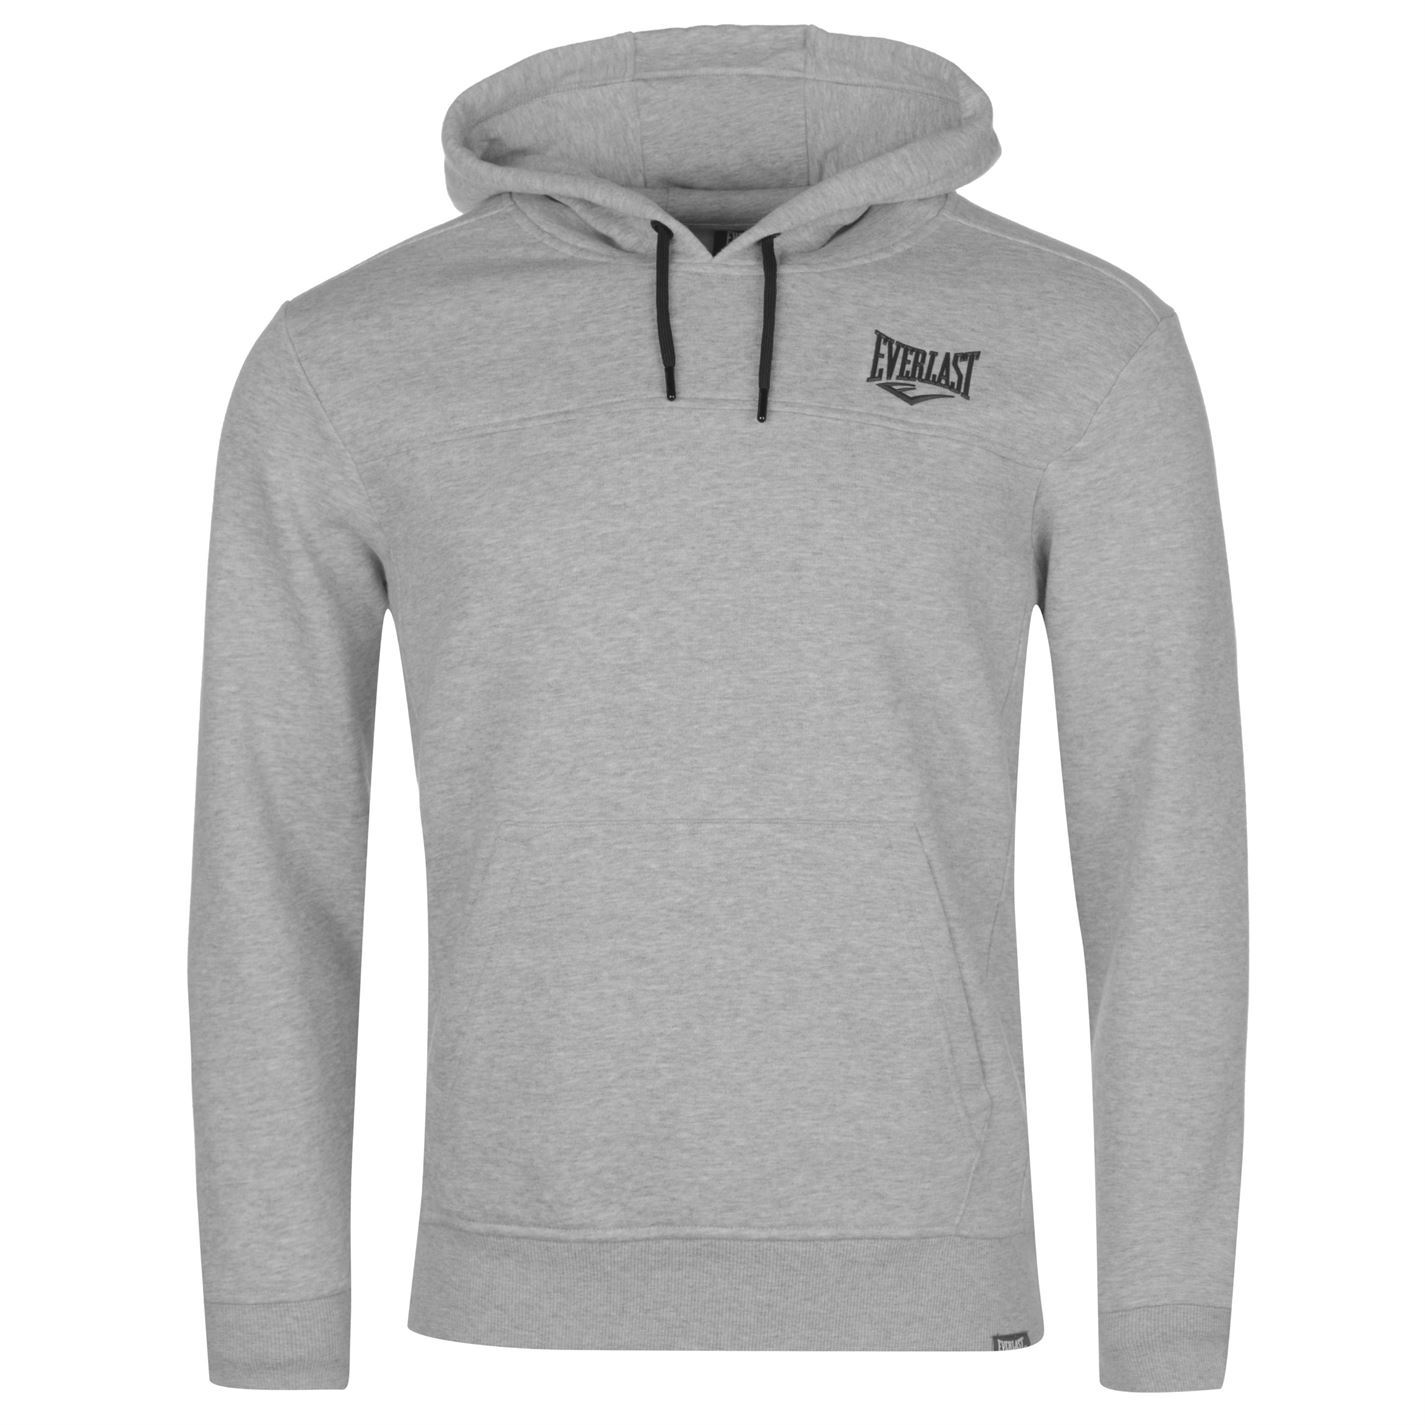 Everlast-Logo-Pullover-Hoody-Mens-OTH-Hoodie-Hooded-Top-Sweatshirt-Sweater thumbnail 21